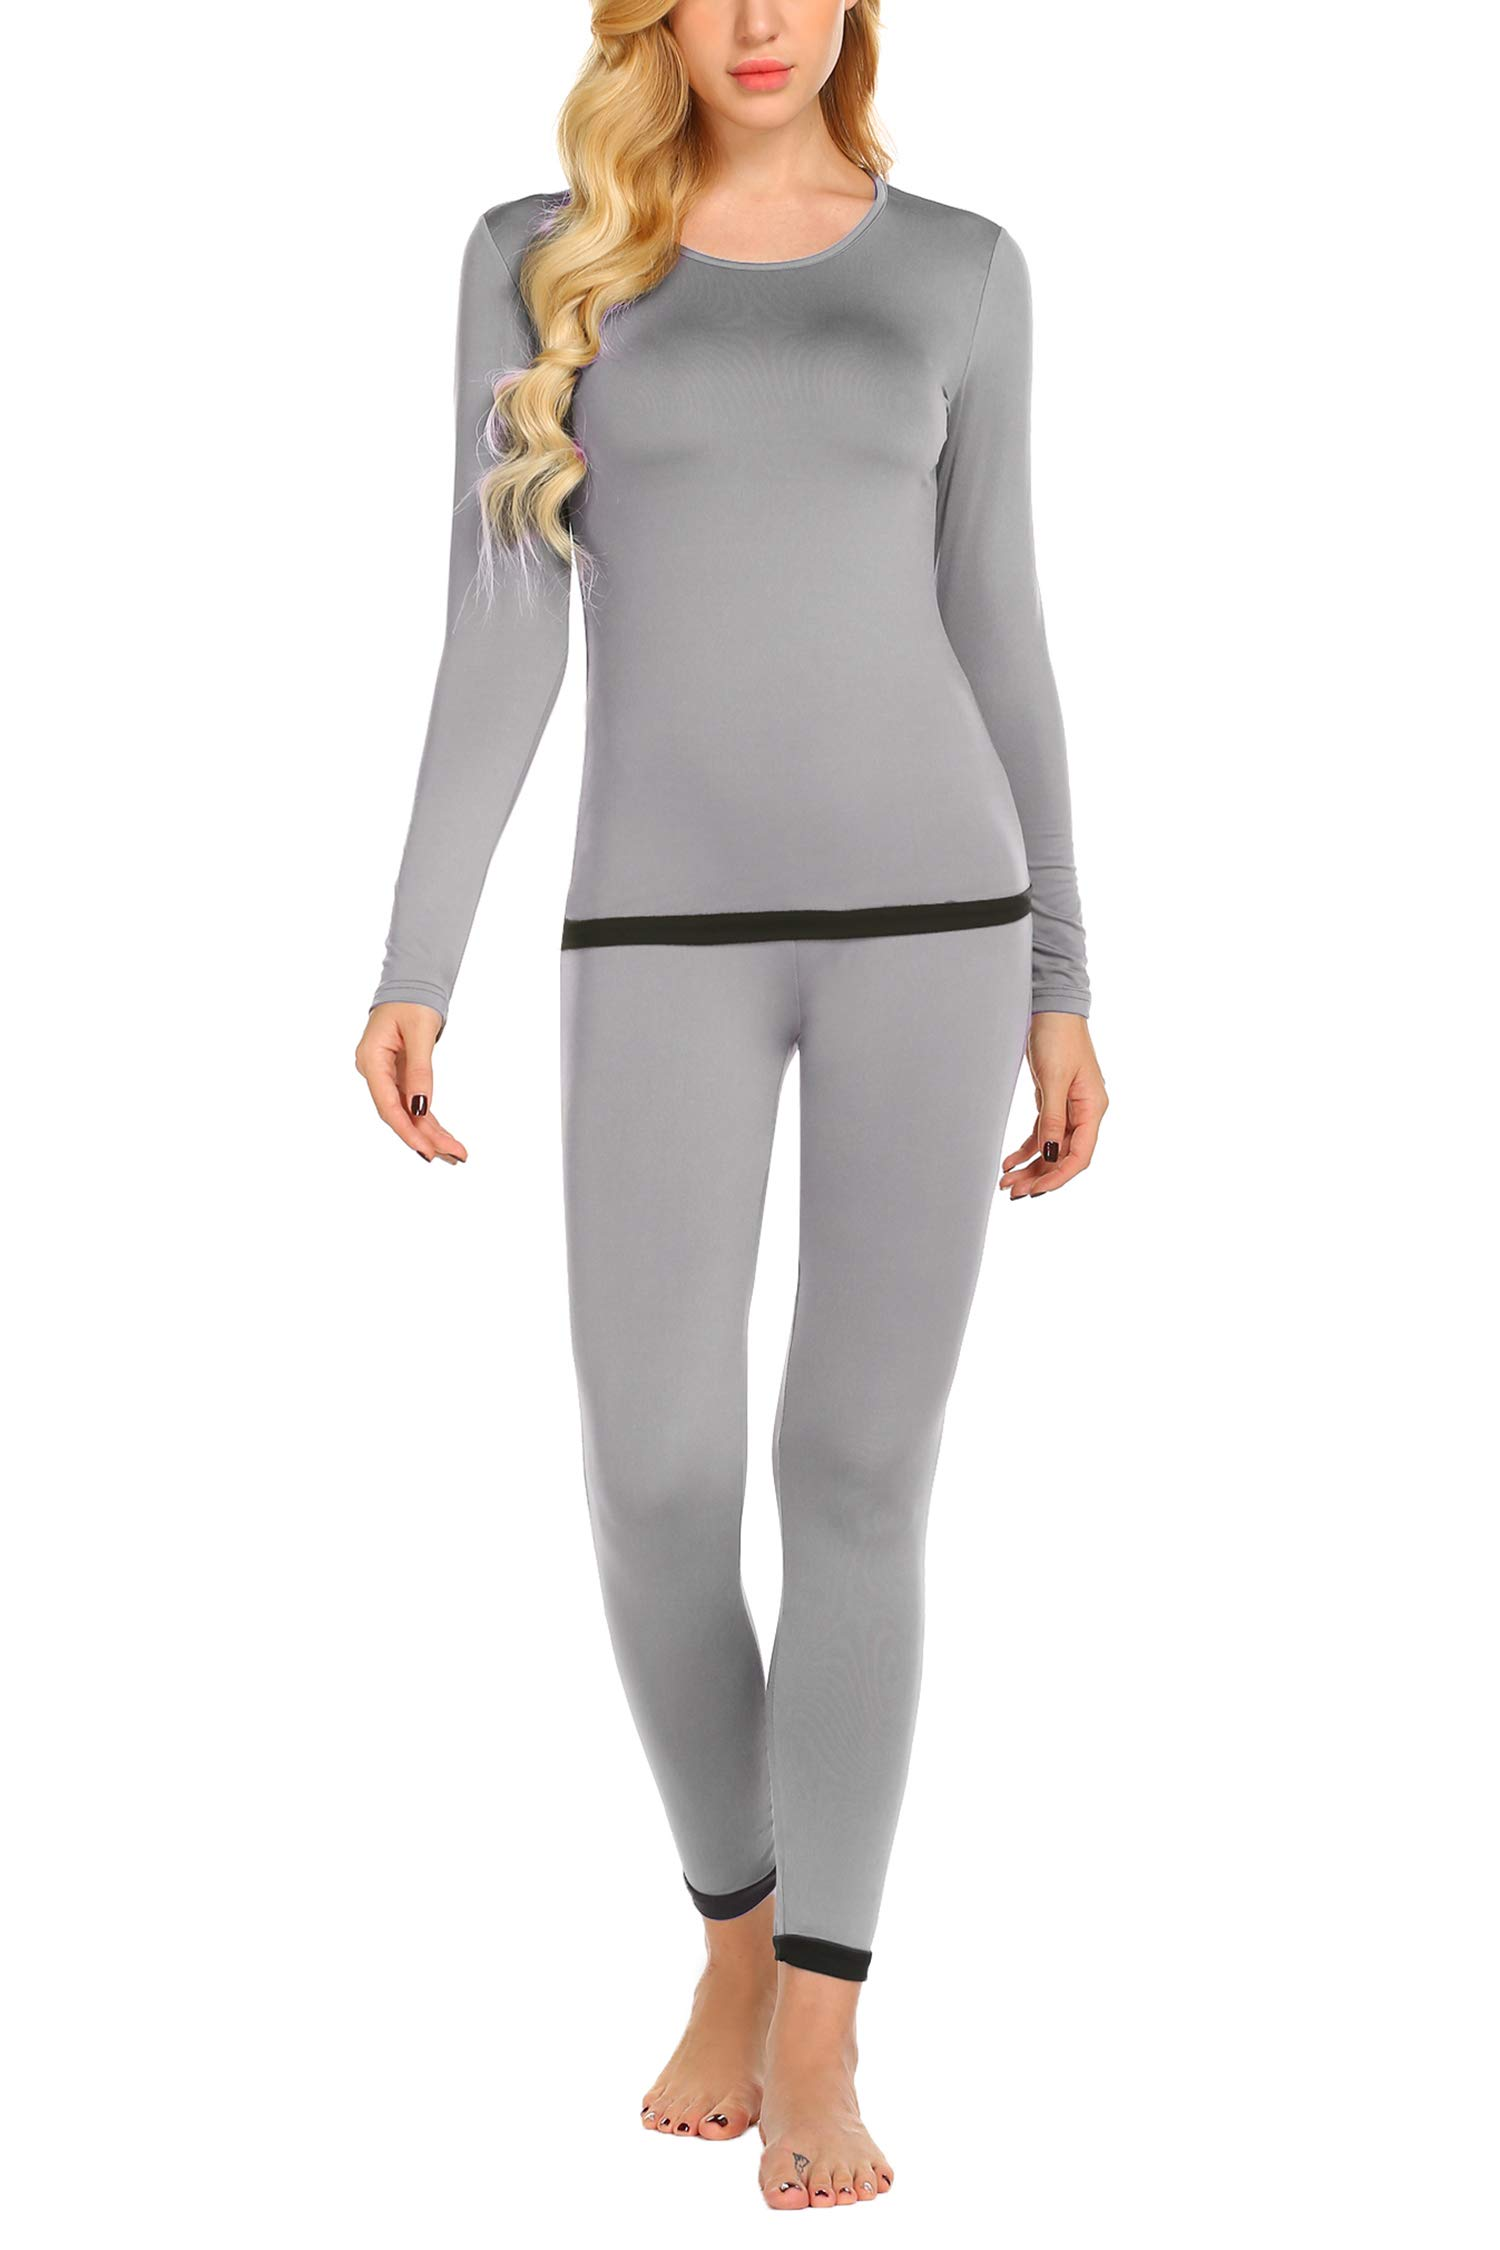 Ekouaer Women's Thermal Underwear Sets Micro Fleece Lined Long Johns Base Layer Thermals 2 Piece Set